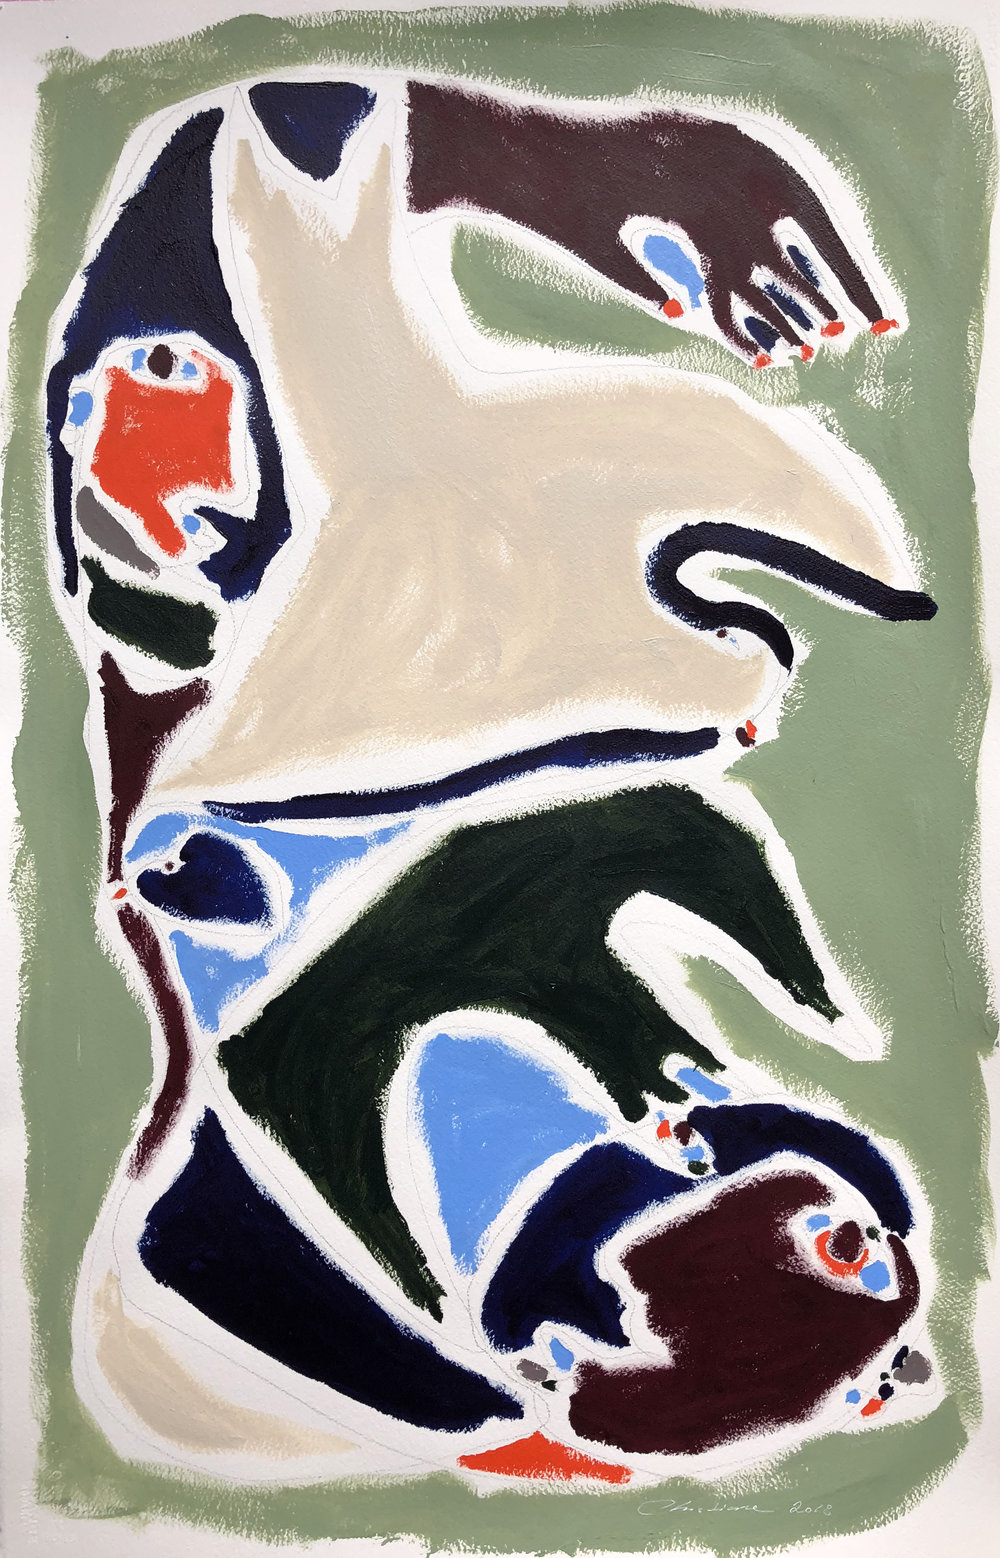 WILD THINGS CANNOT BE TAMED   Acrylic on paper 40 x 26 in